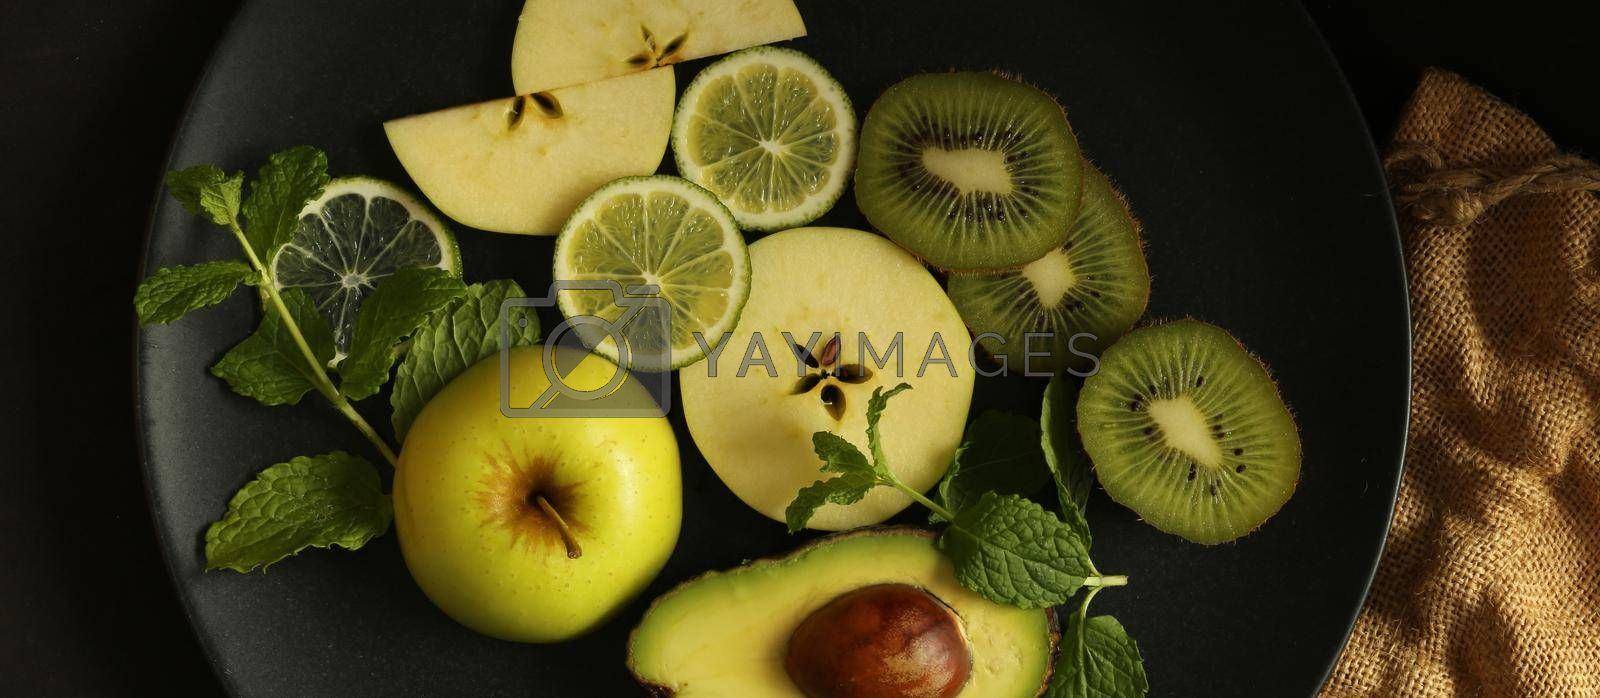 citrus fruits on black background with canvas, top view. Dramatic kitchen with green fruits